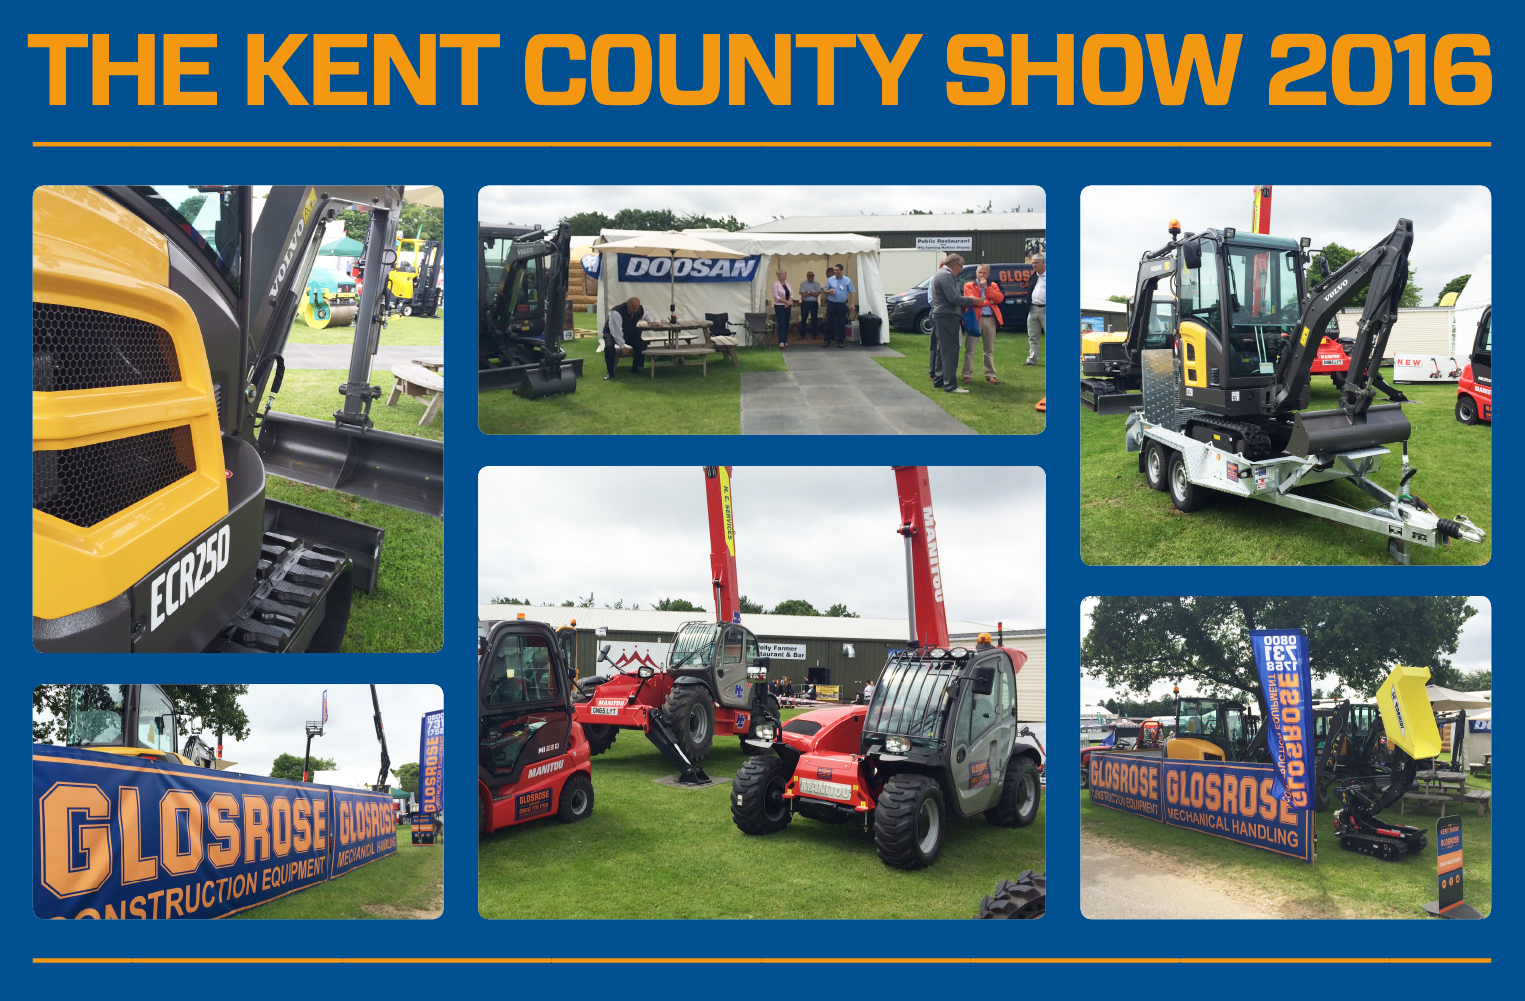 Kent-County-Show-2016-2nd-Article